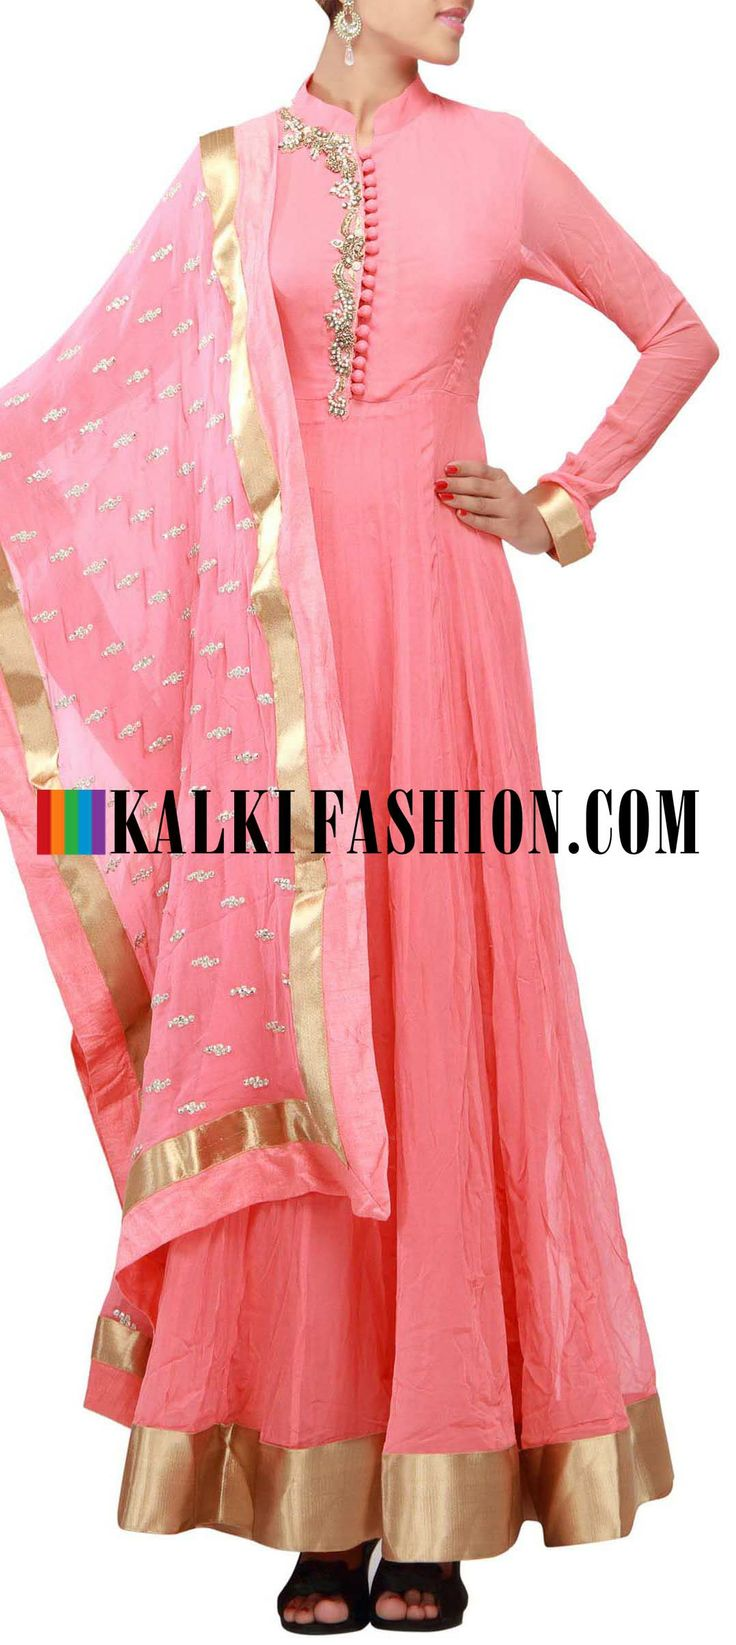 Buy Online from the link below. We ship worldwide (Free Shipping over US$100) http://www.kalkifashion.com/catalog/product/view/id/9641/s/peach-anarkali-suit-featuring-with-embellished-placket-in-pearl-and-zardosi-only-on-kalki/  peach anarkali suit featuring with embellished placket in pearl and zardosi only on Kalki